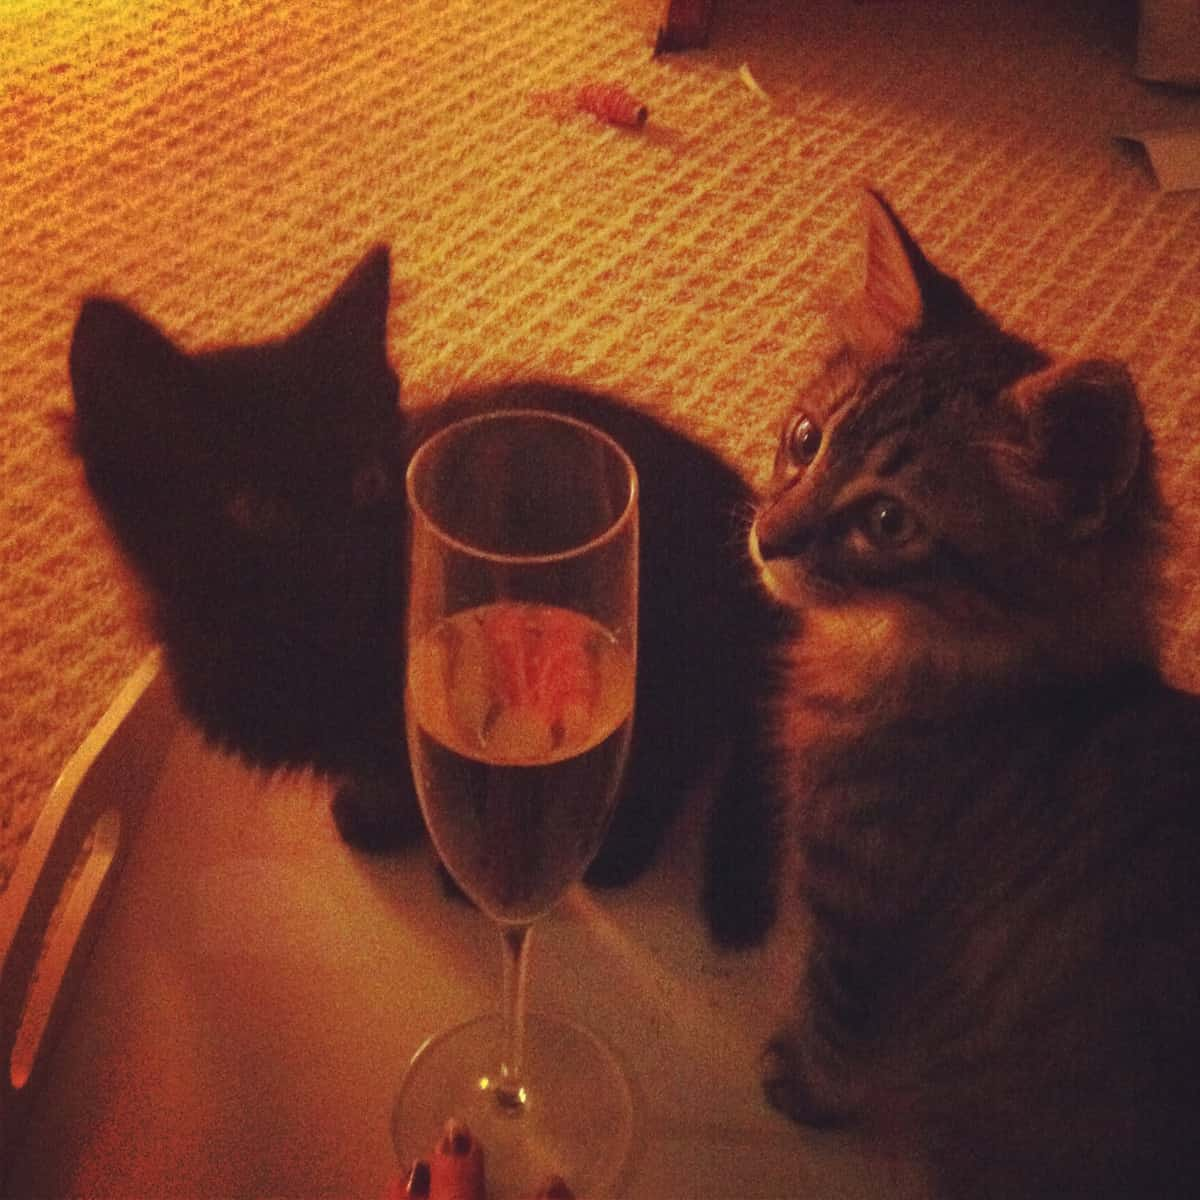 kittens & Champagne